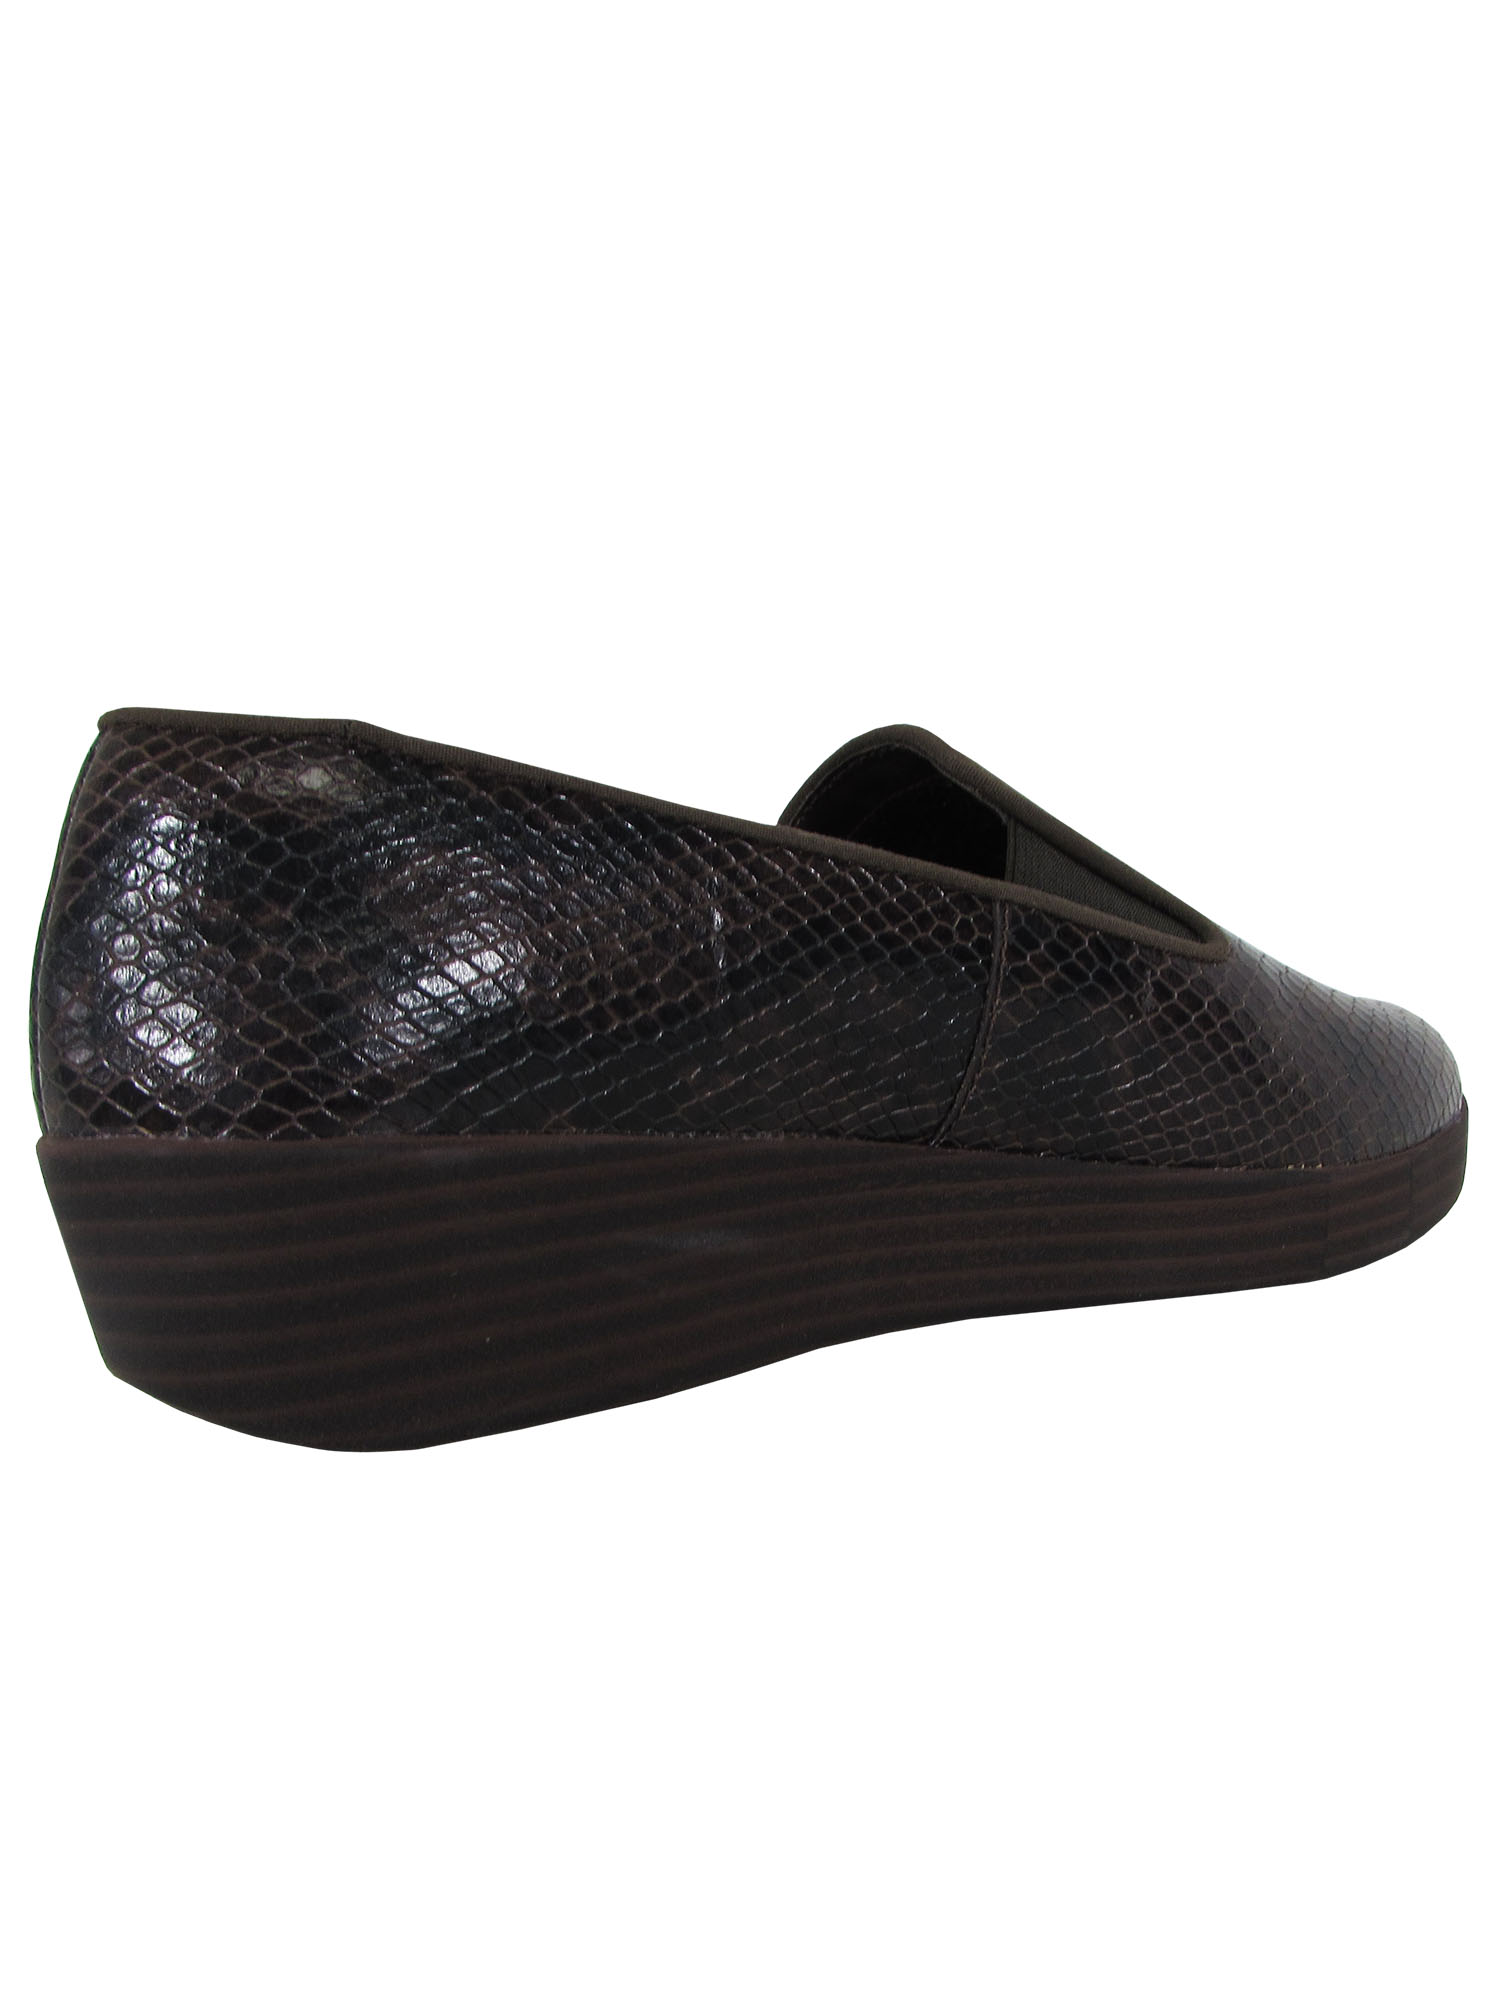 FitFlop-Womens-Superskate-Slip-On-Loafer-Shoes thumbnail 7